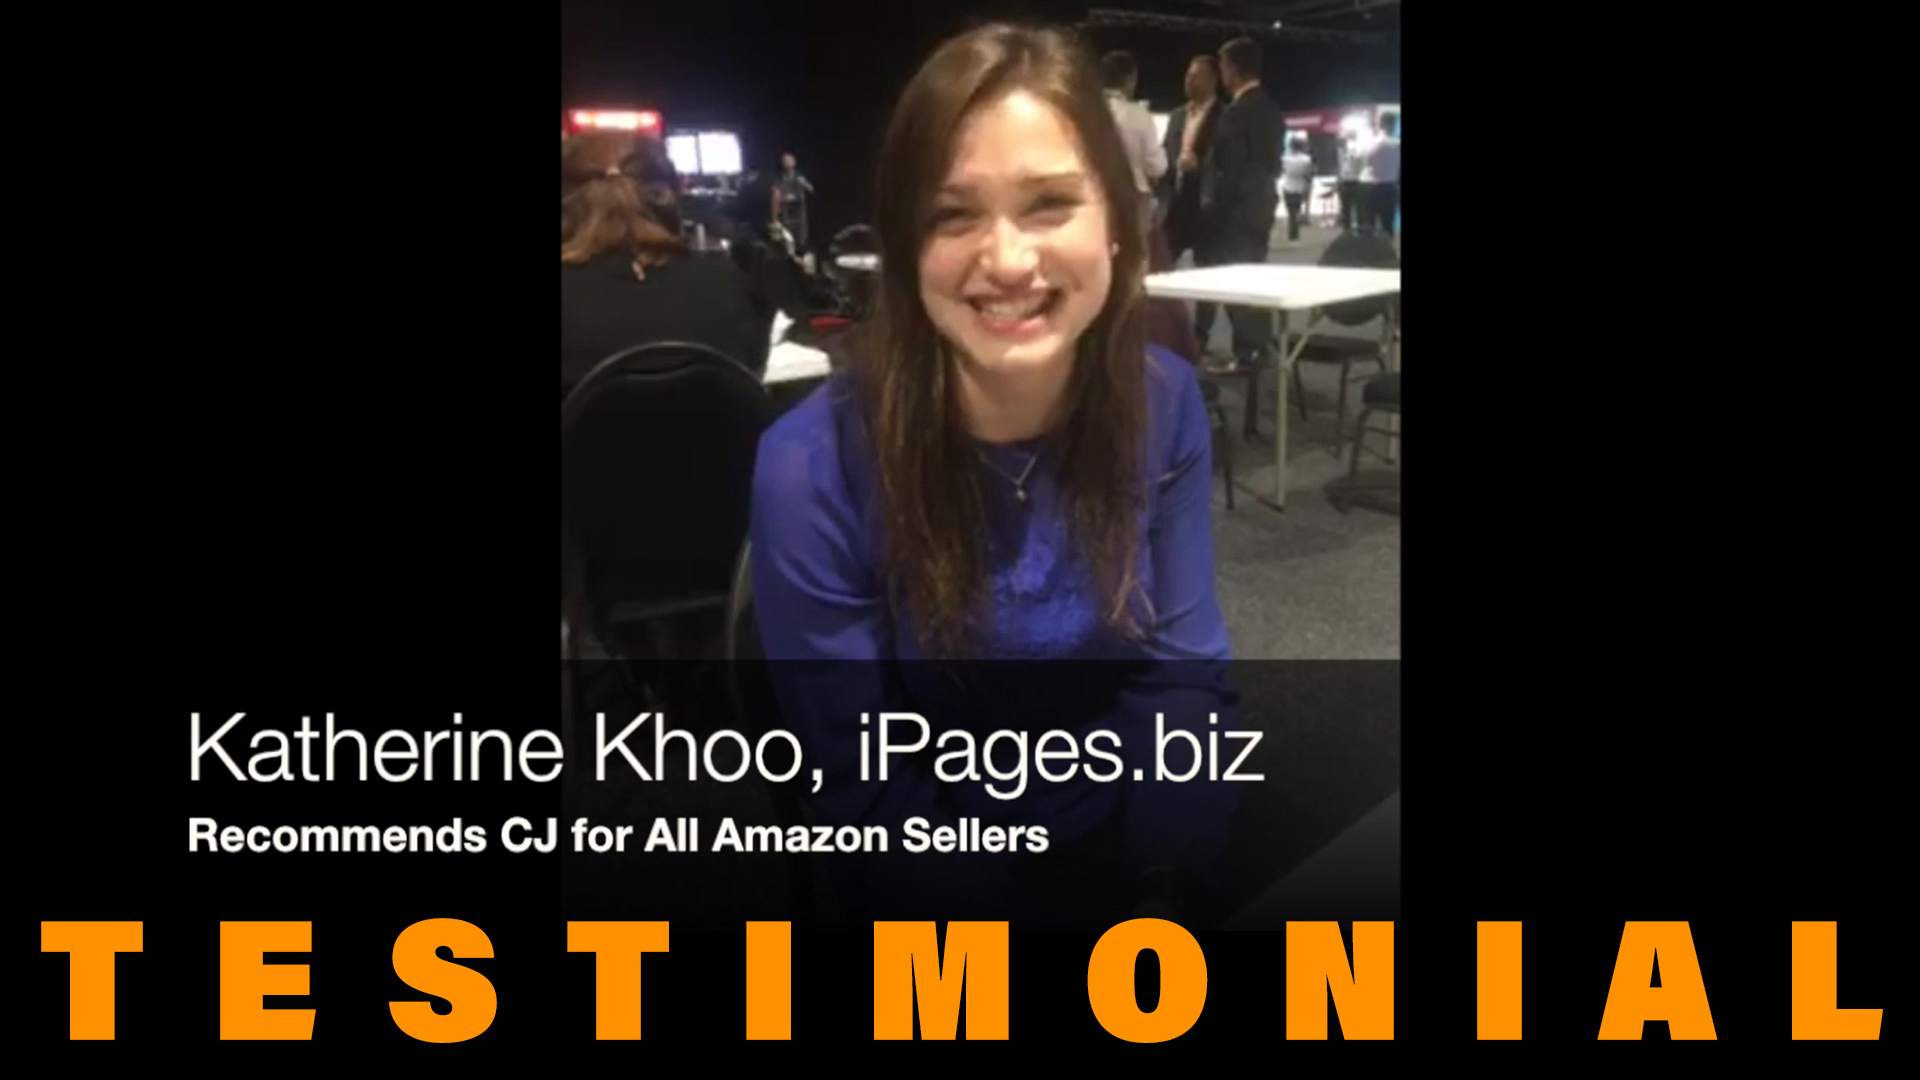 testimonial of AMZ Vendor Katherine Khoo (iPages.biz) recommends CJ for all Amazon sellers